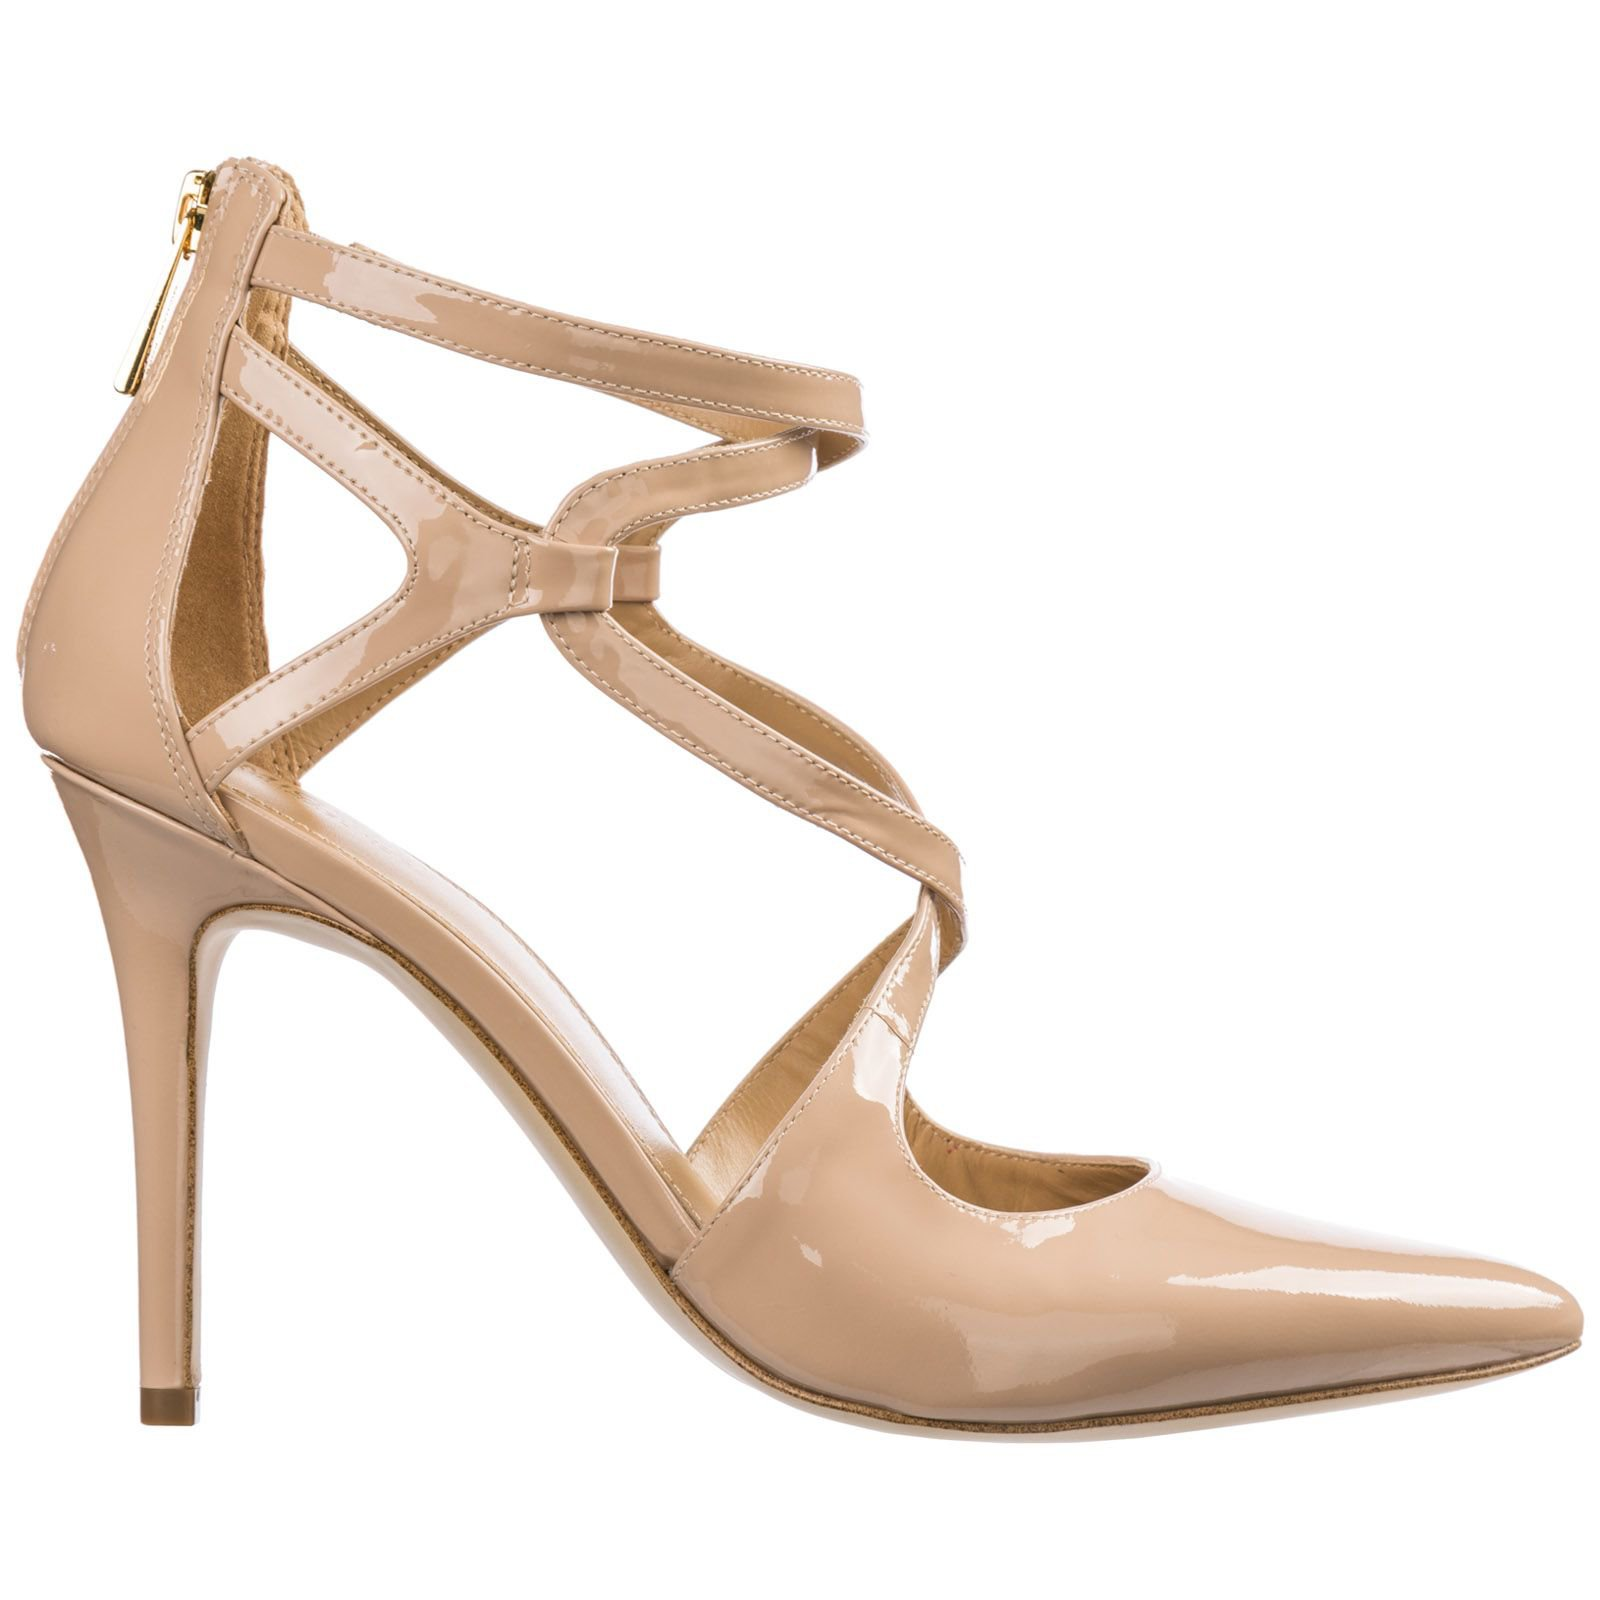 Michael Kors Leather Pumps Court Shoes High Heel Catia